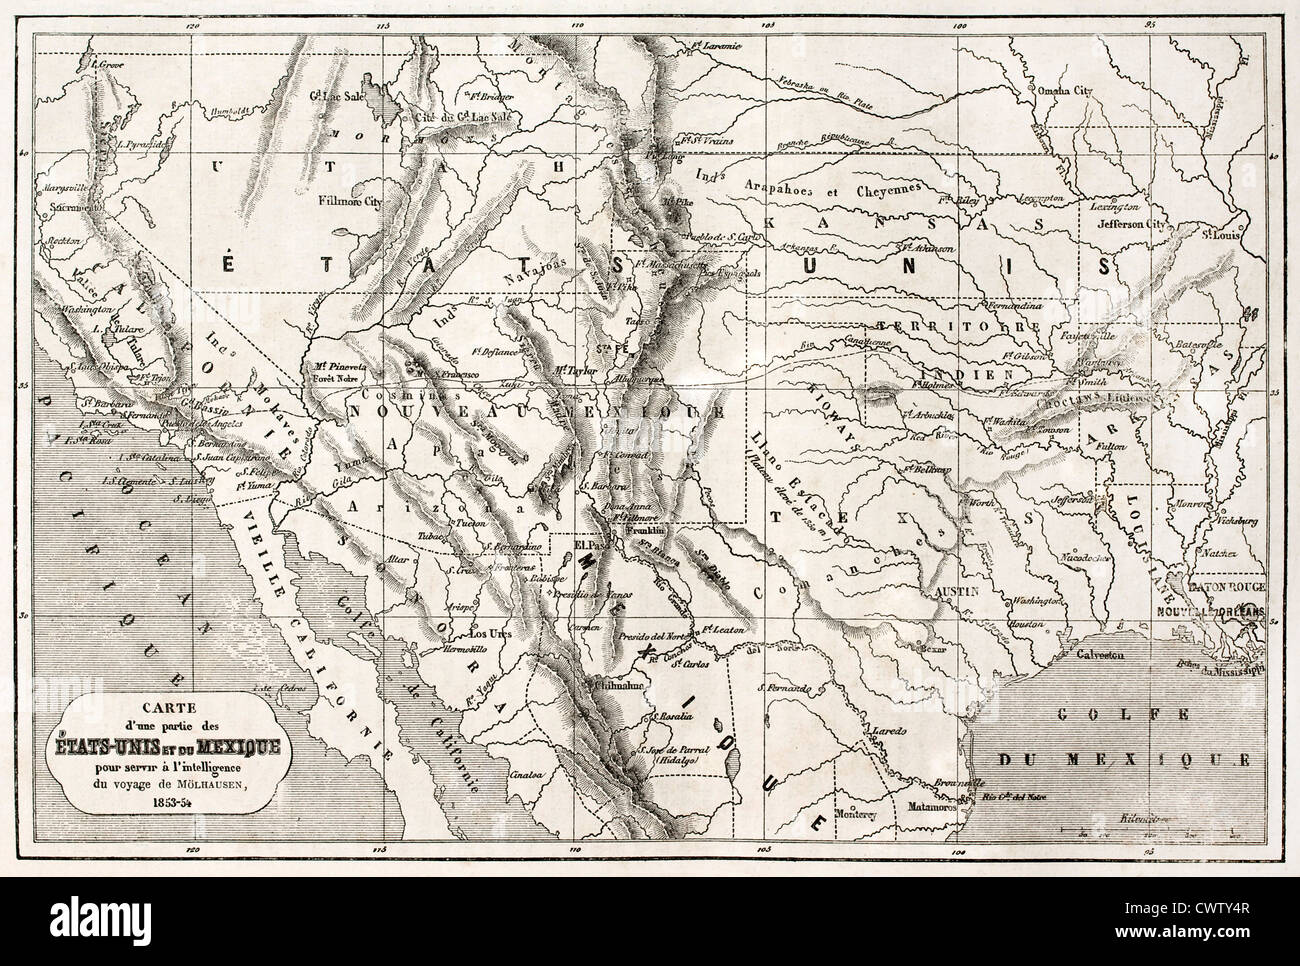 Old Map Of Northern Mexico And Southwestern Usa Photo – Map Northern Mexico